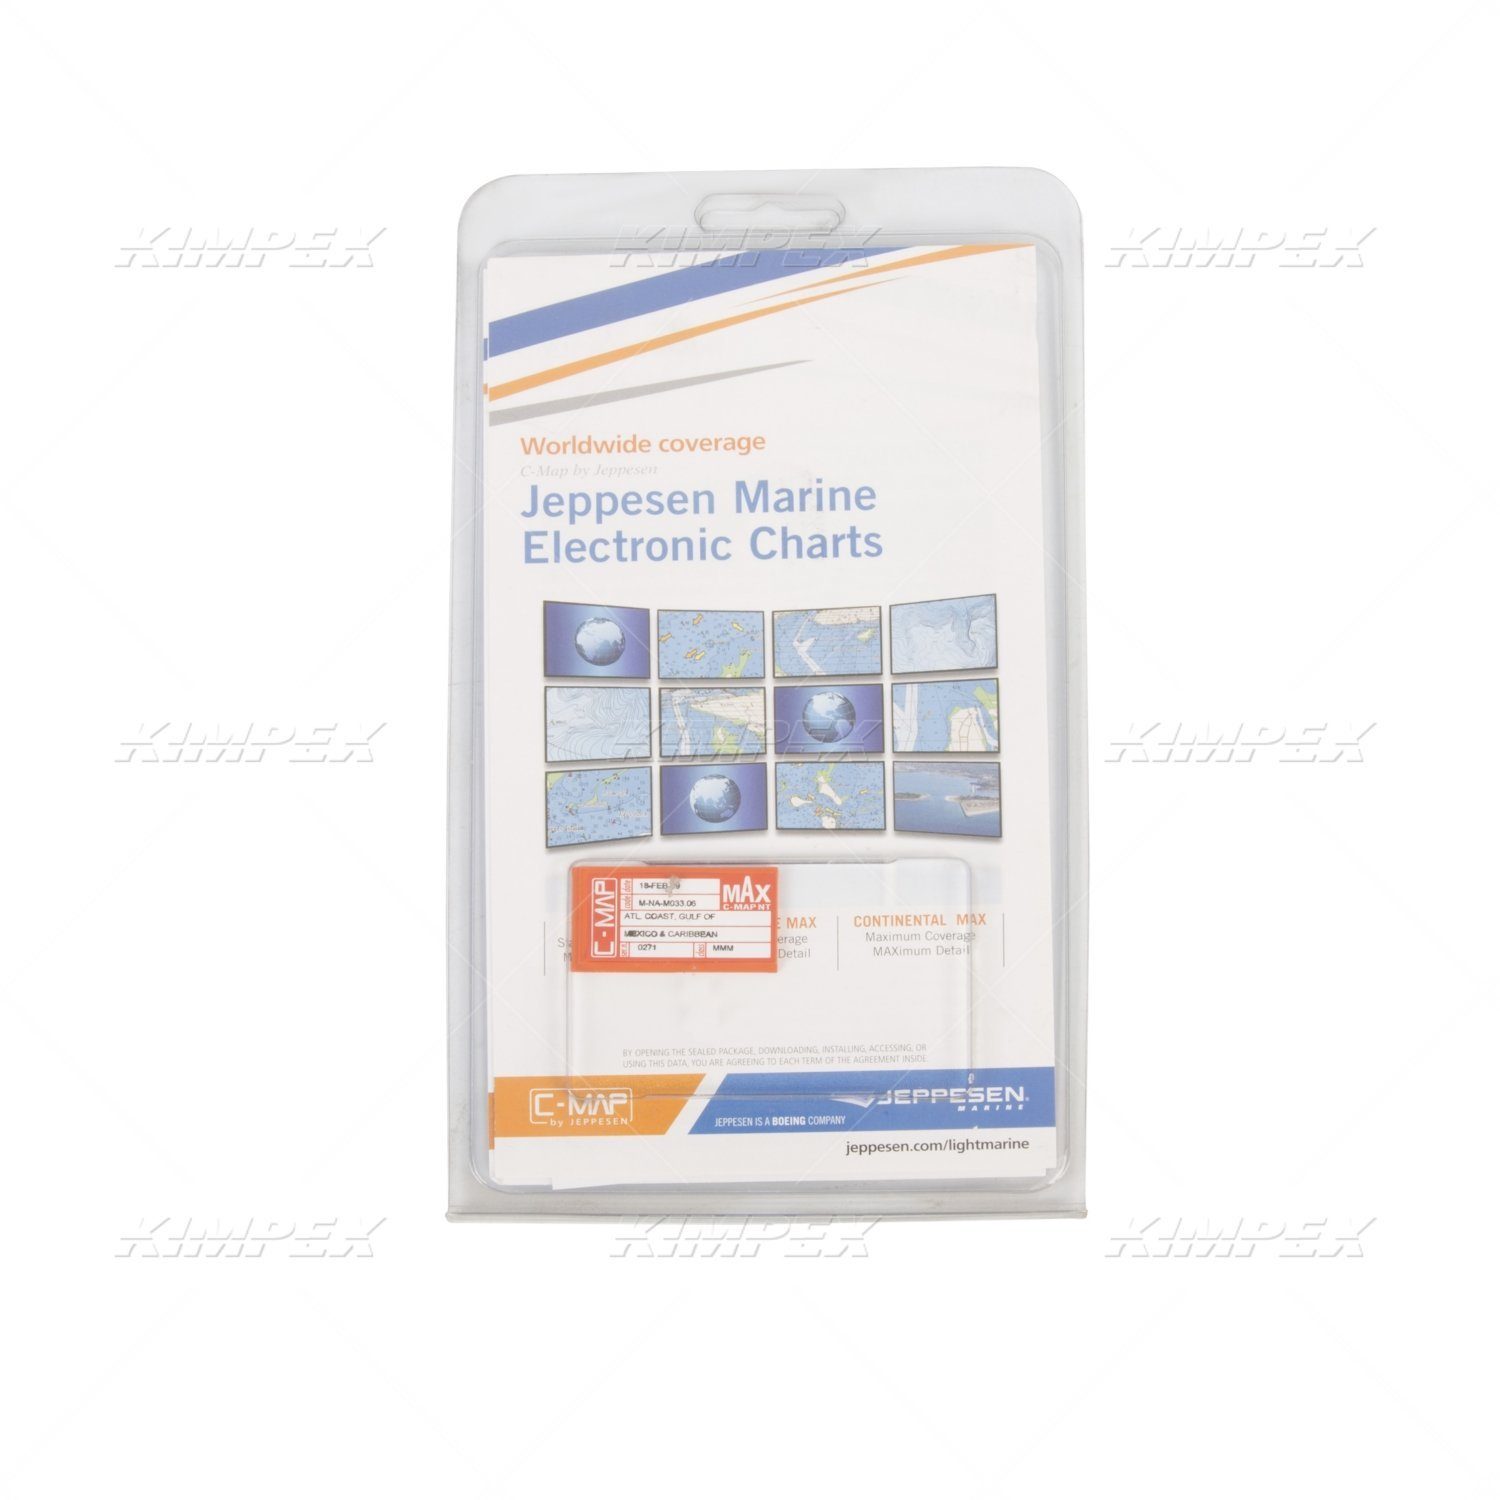 Cheap C Map Max, find C Map Max deals on line at Alibaba.com on